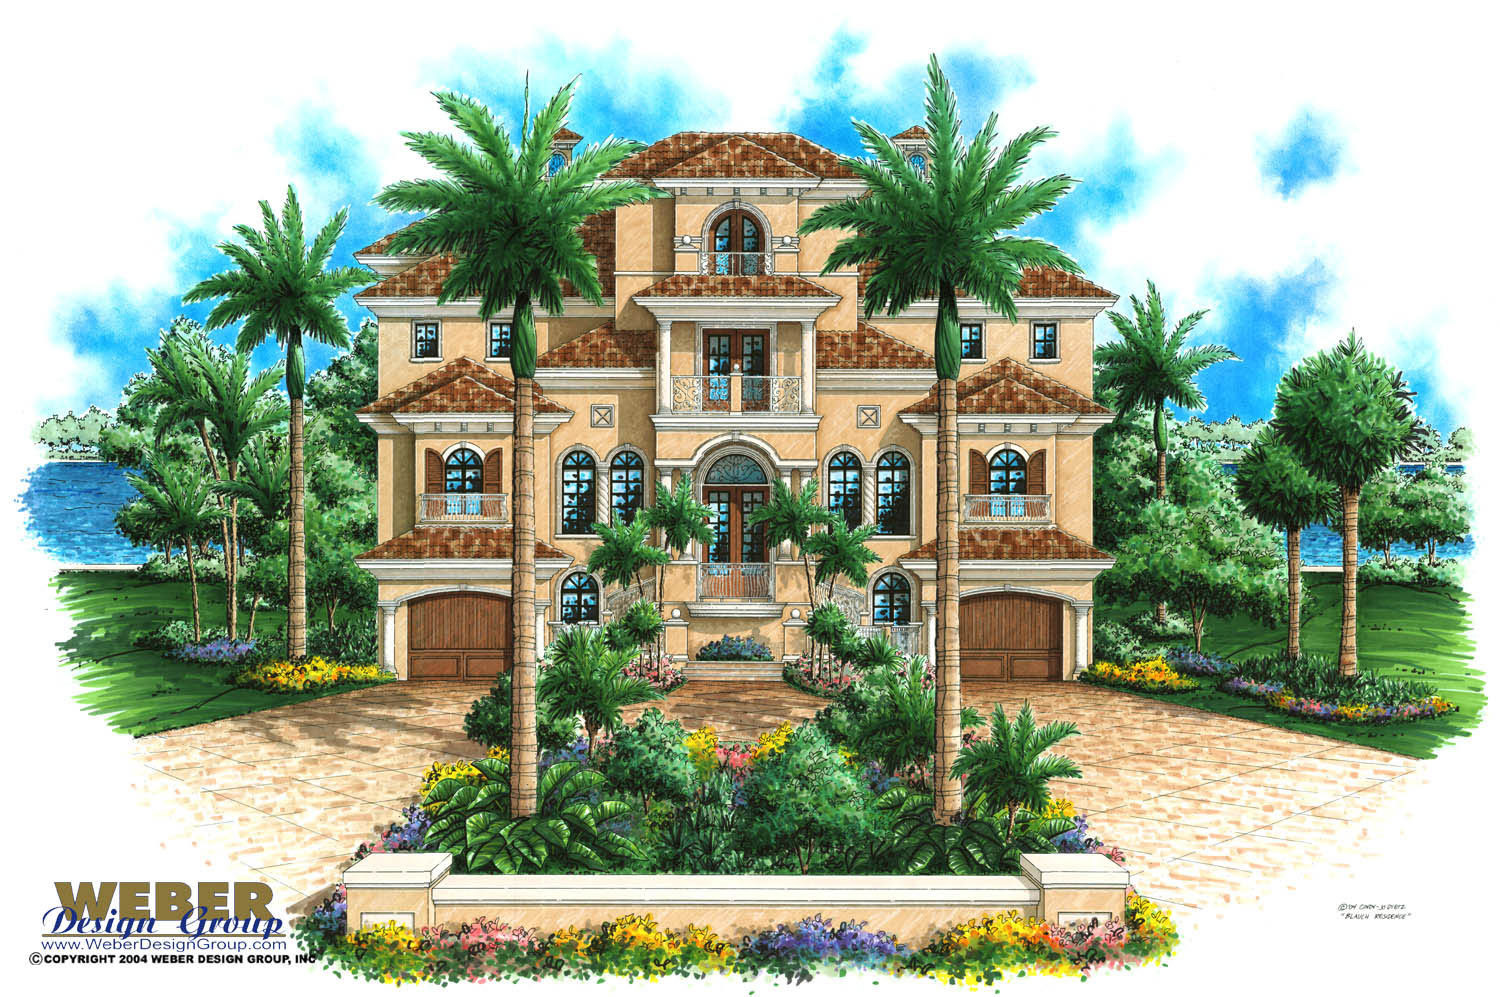 casa real nueva house planluxury house plans home plans with pictures of luxurious. beautiful ideas. Home Design Ideas